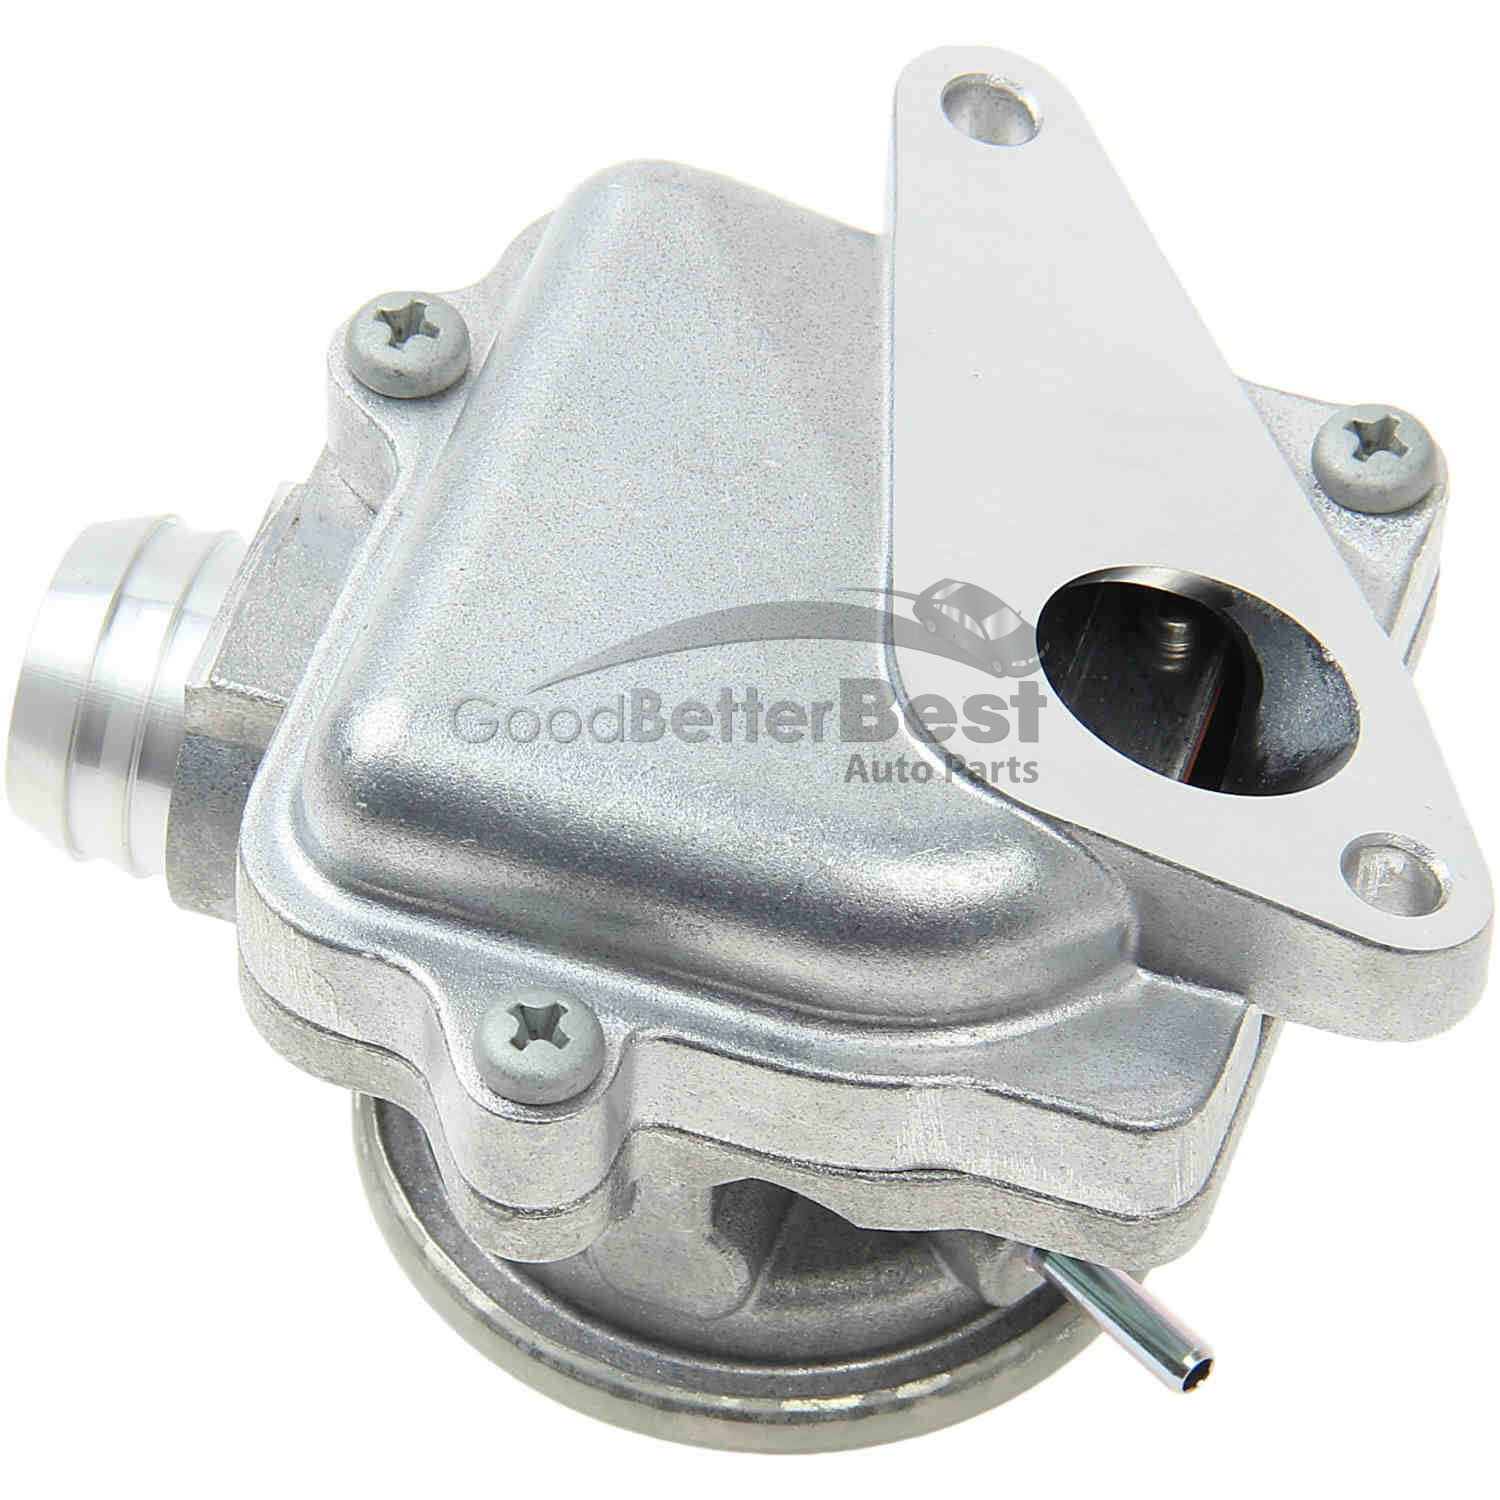 One New Genuine Secondary Air Injection Pump Check Valve Left 0021407460